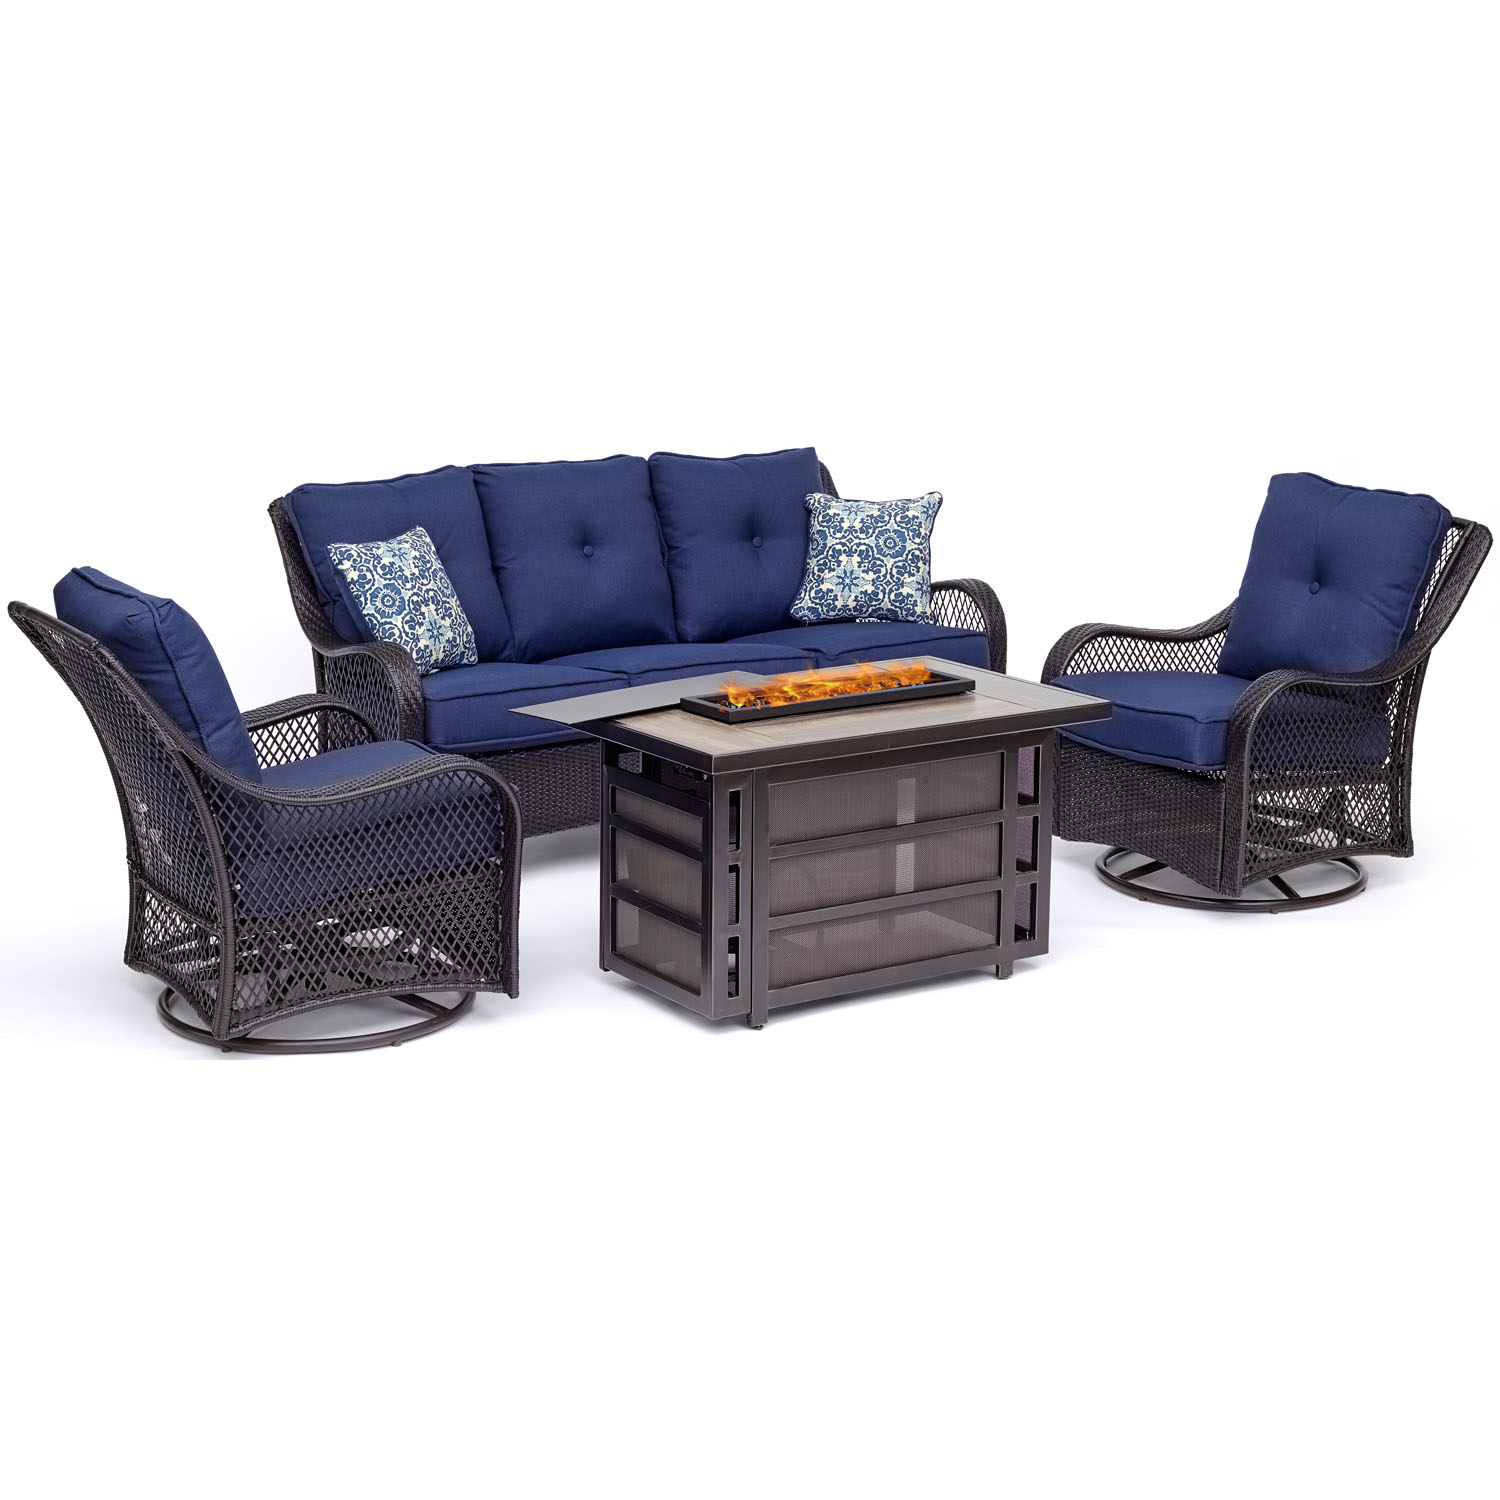 Hanover Orleans 4-Piece Woven Lounge Set with 30,000 BTU Firepit Table in Navy Blue by Hanover